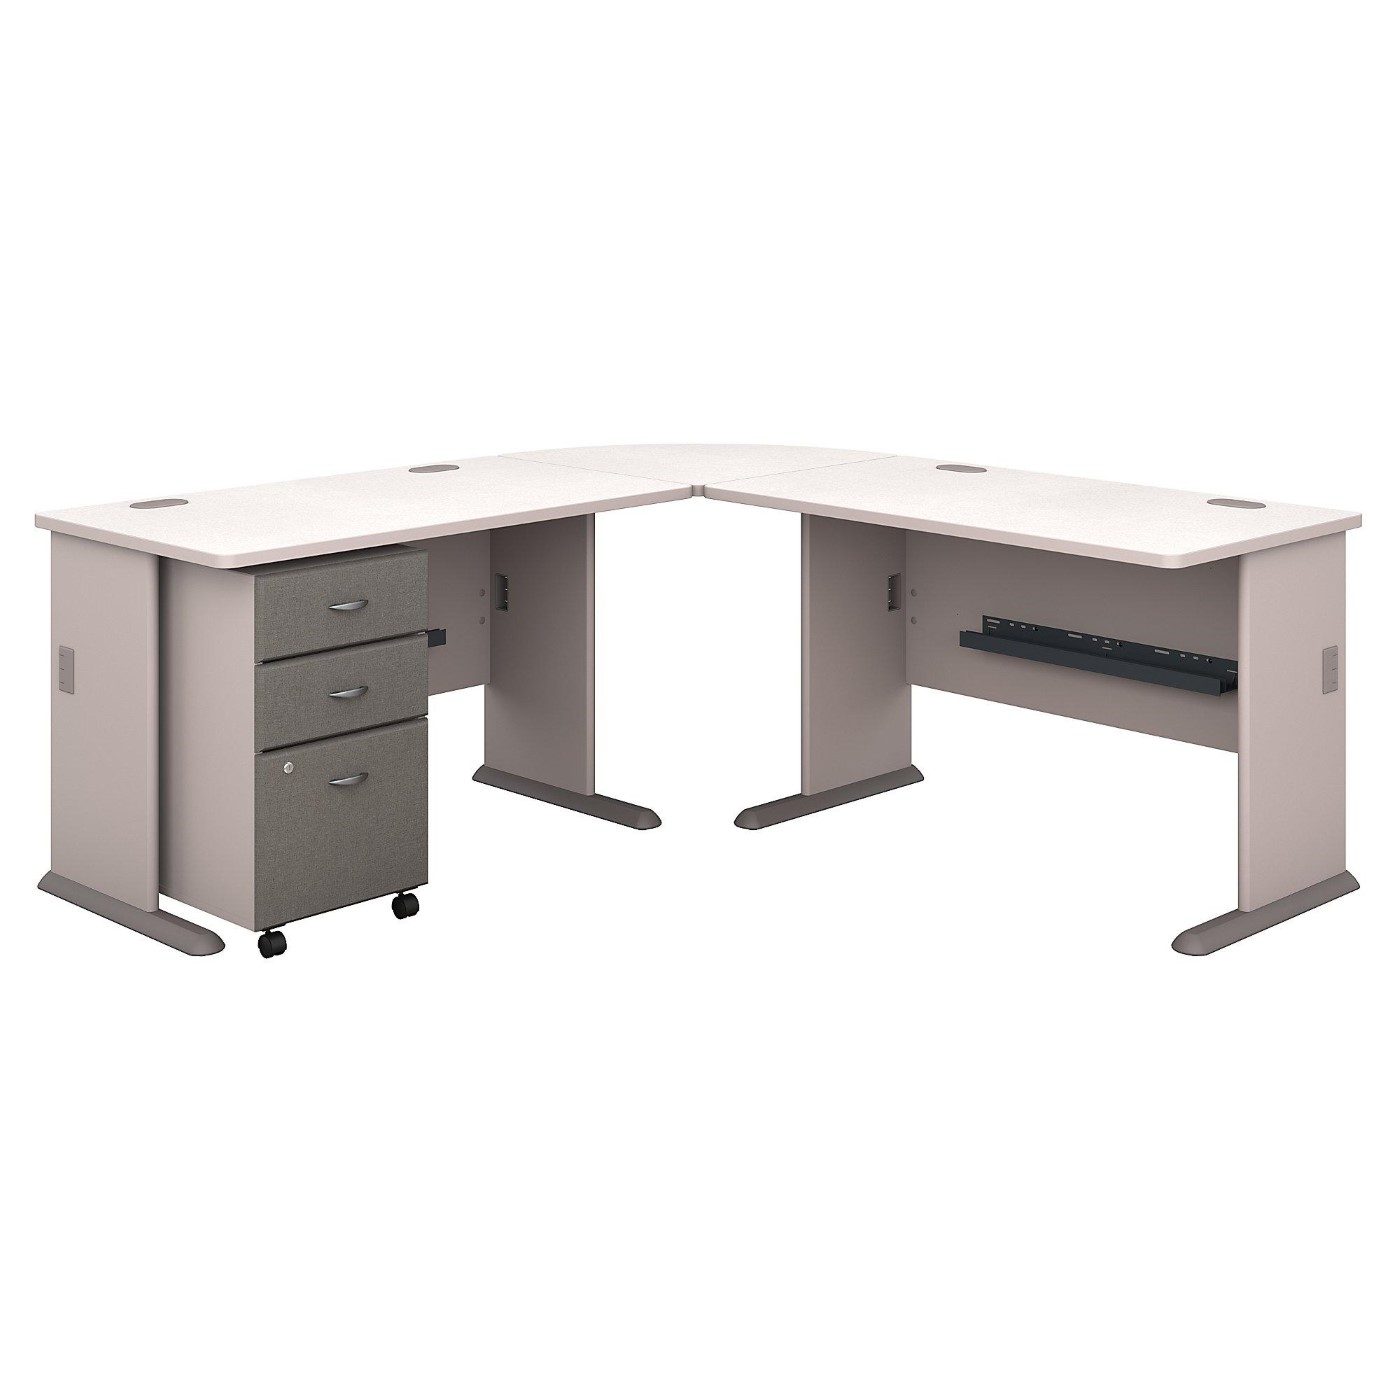 <font color=#c60><b>BUSH BUSINESS FURNITURE SERIES A 75W X 75D L SHAPED DESK WITH MOBILE FILE CABINET. FREE SHIPPING</font></b></font></b>